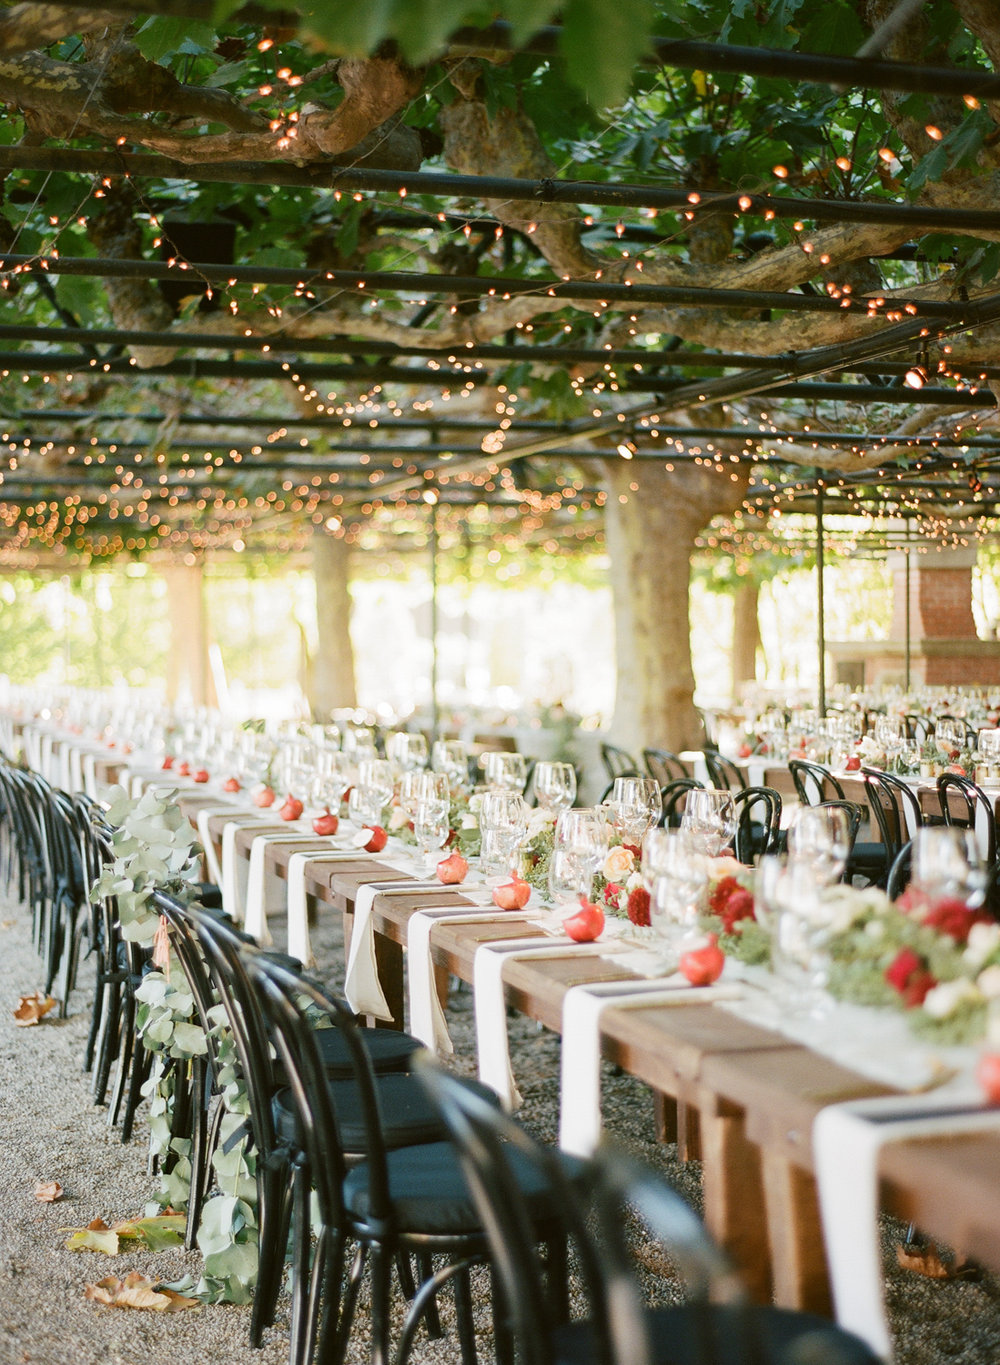 Long reception tables set up below tree arbors and criss-crossed string lights; Sylvie Gil Photography